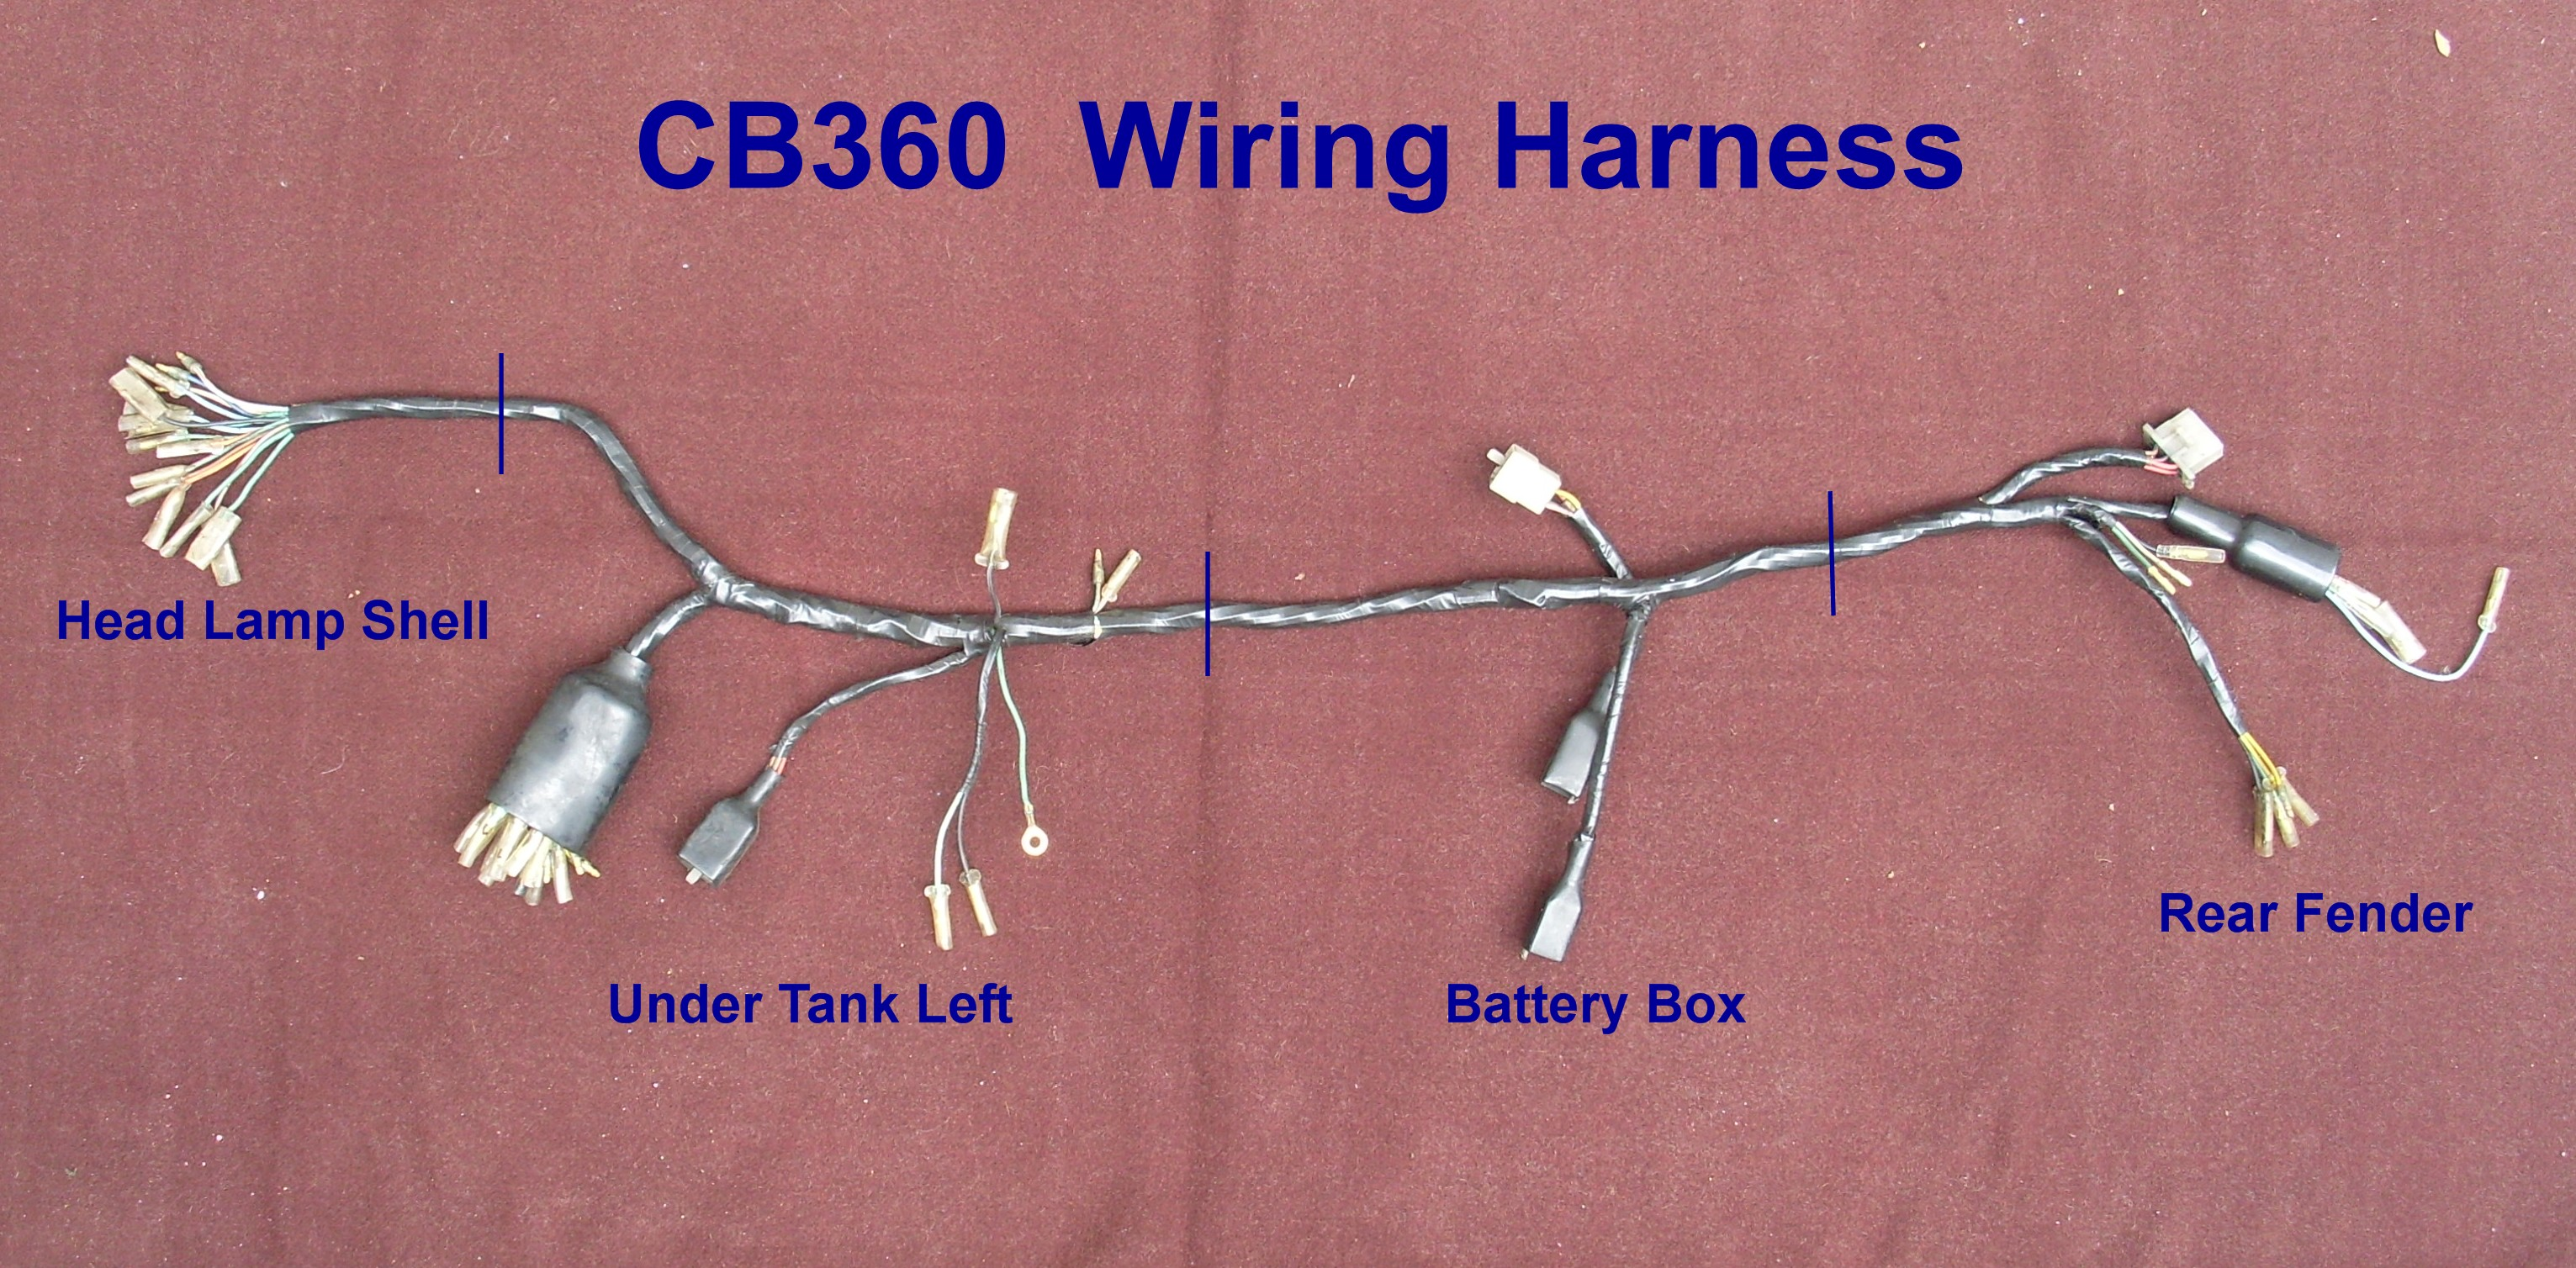 Cb360 Simple Wiring Harness Automotive Wiring Harness - Wiring Diagrams